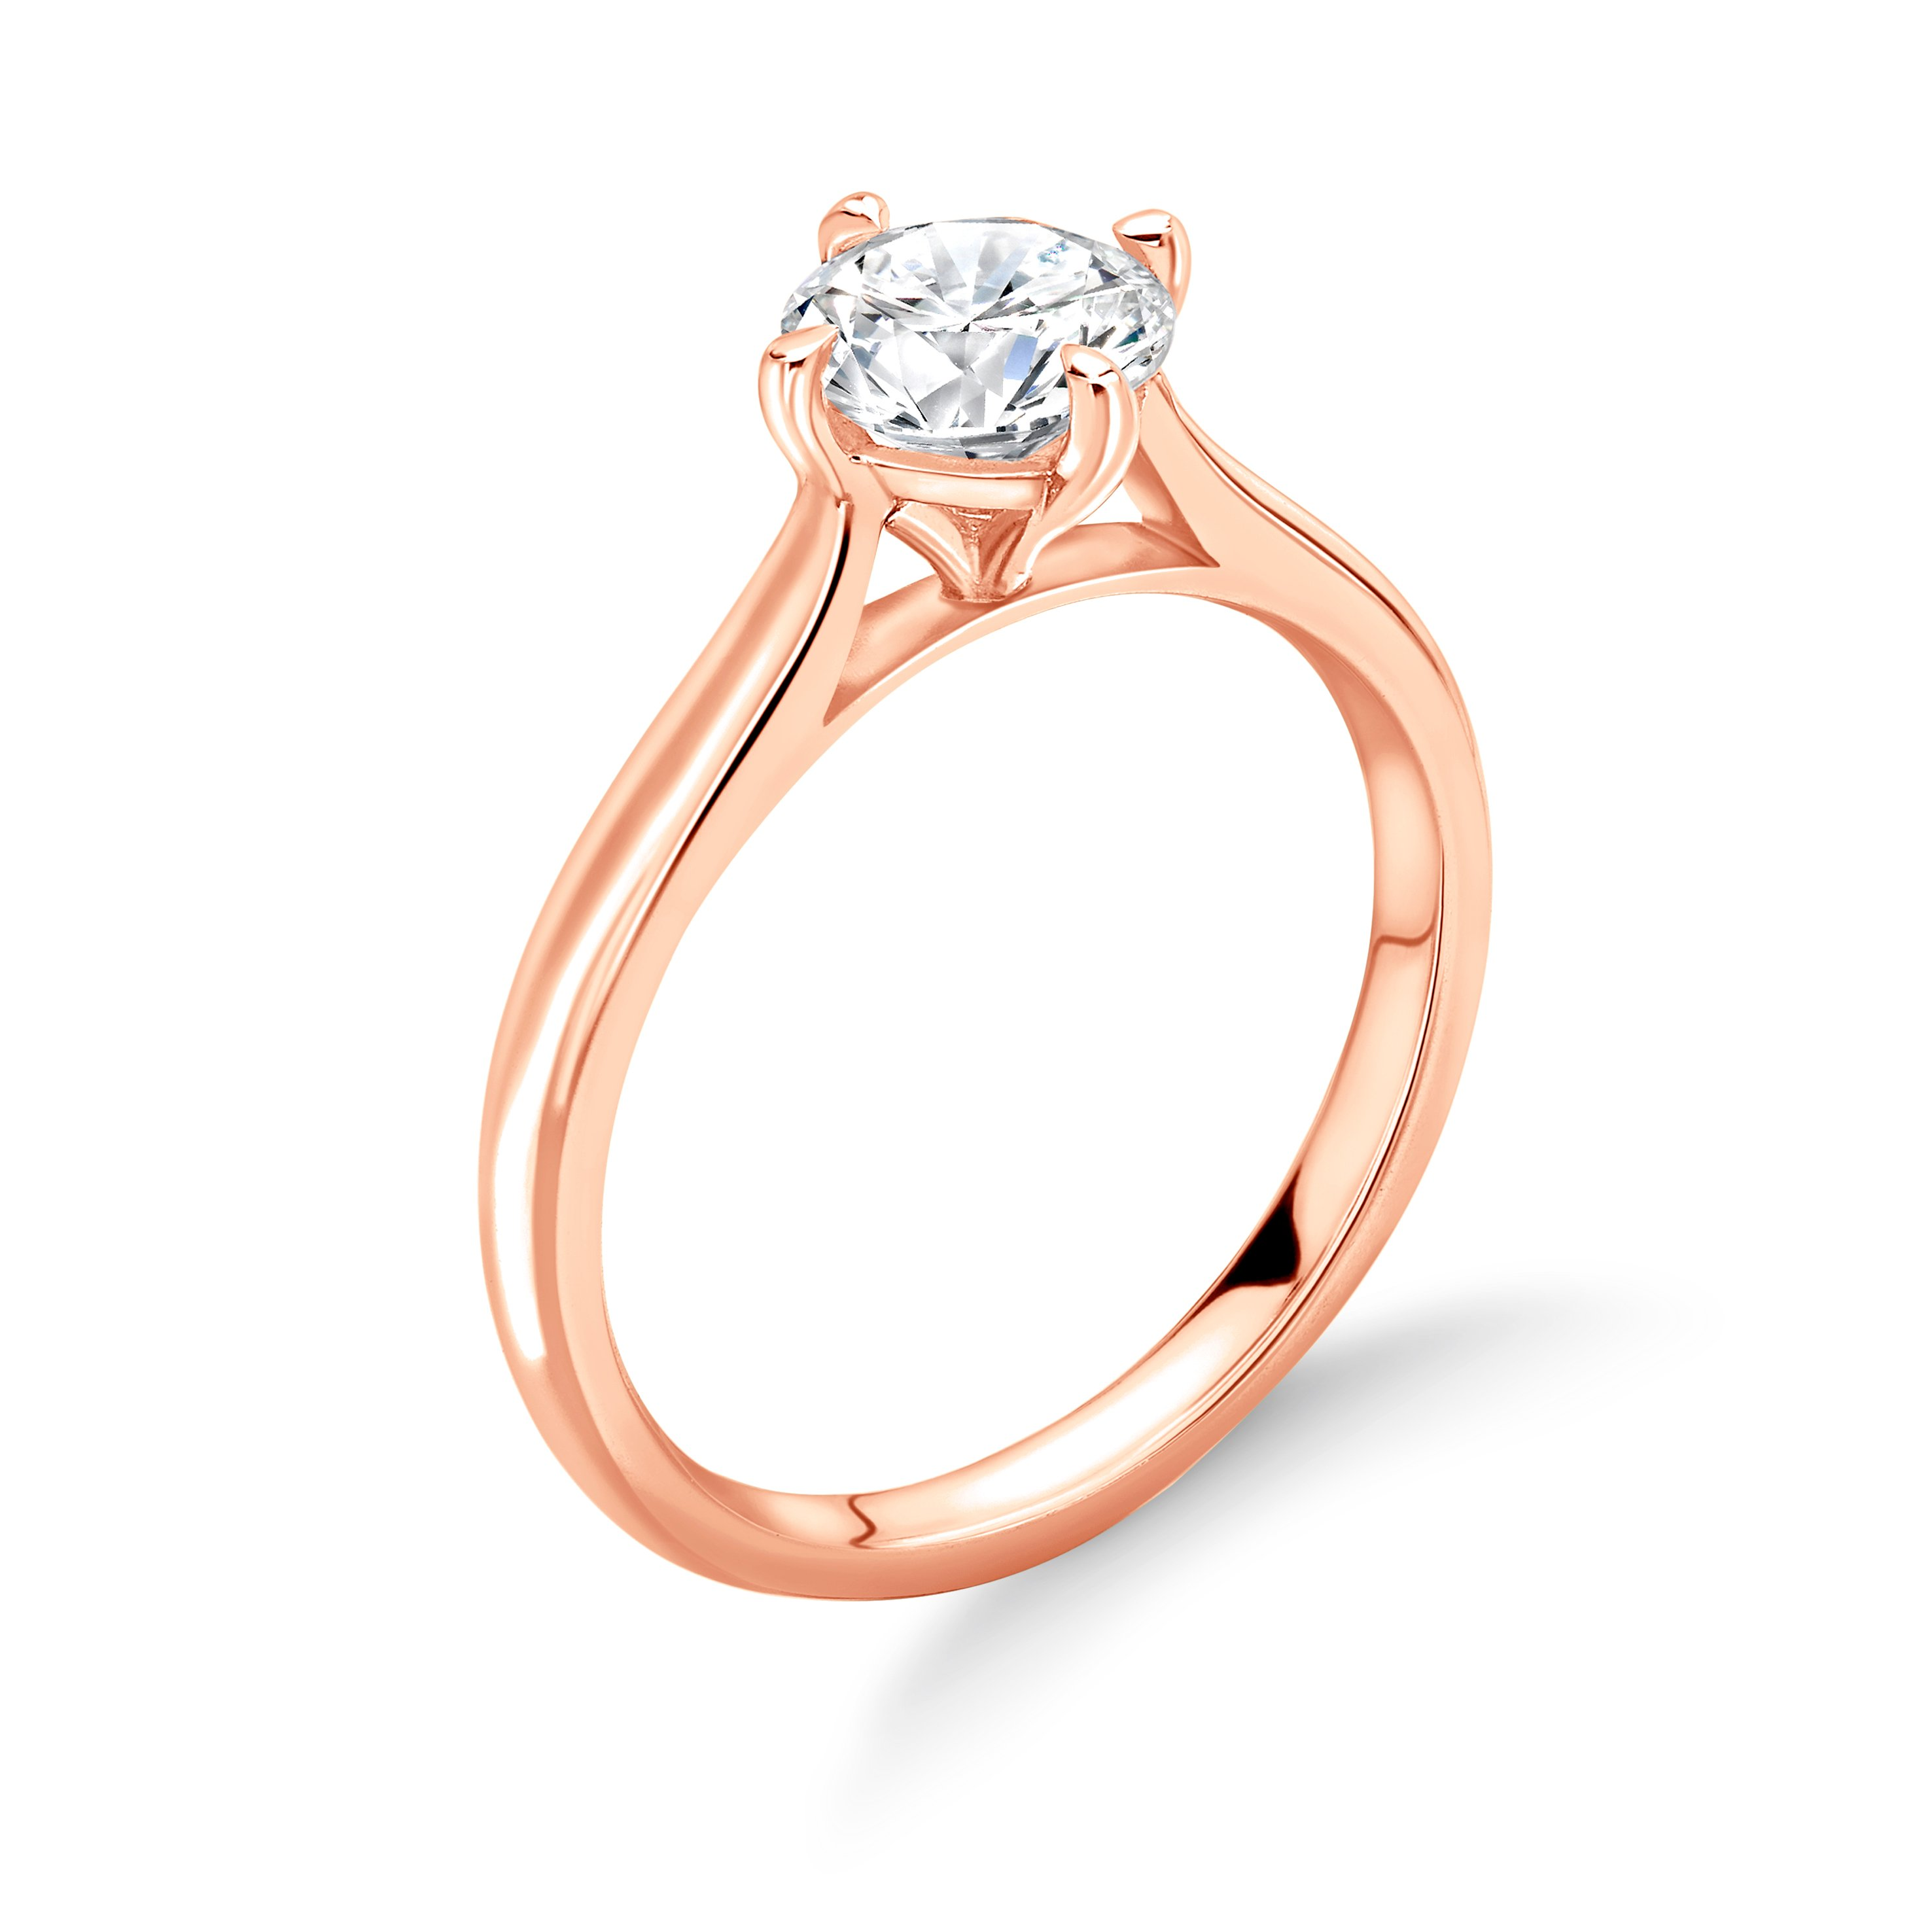 N-W-E-S Style Setting Solitaire Diamond Engagement Ring